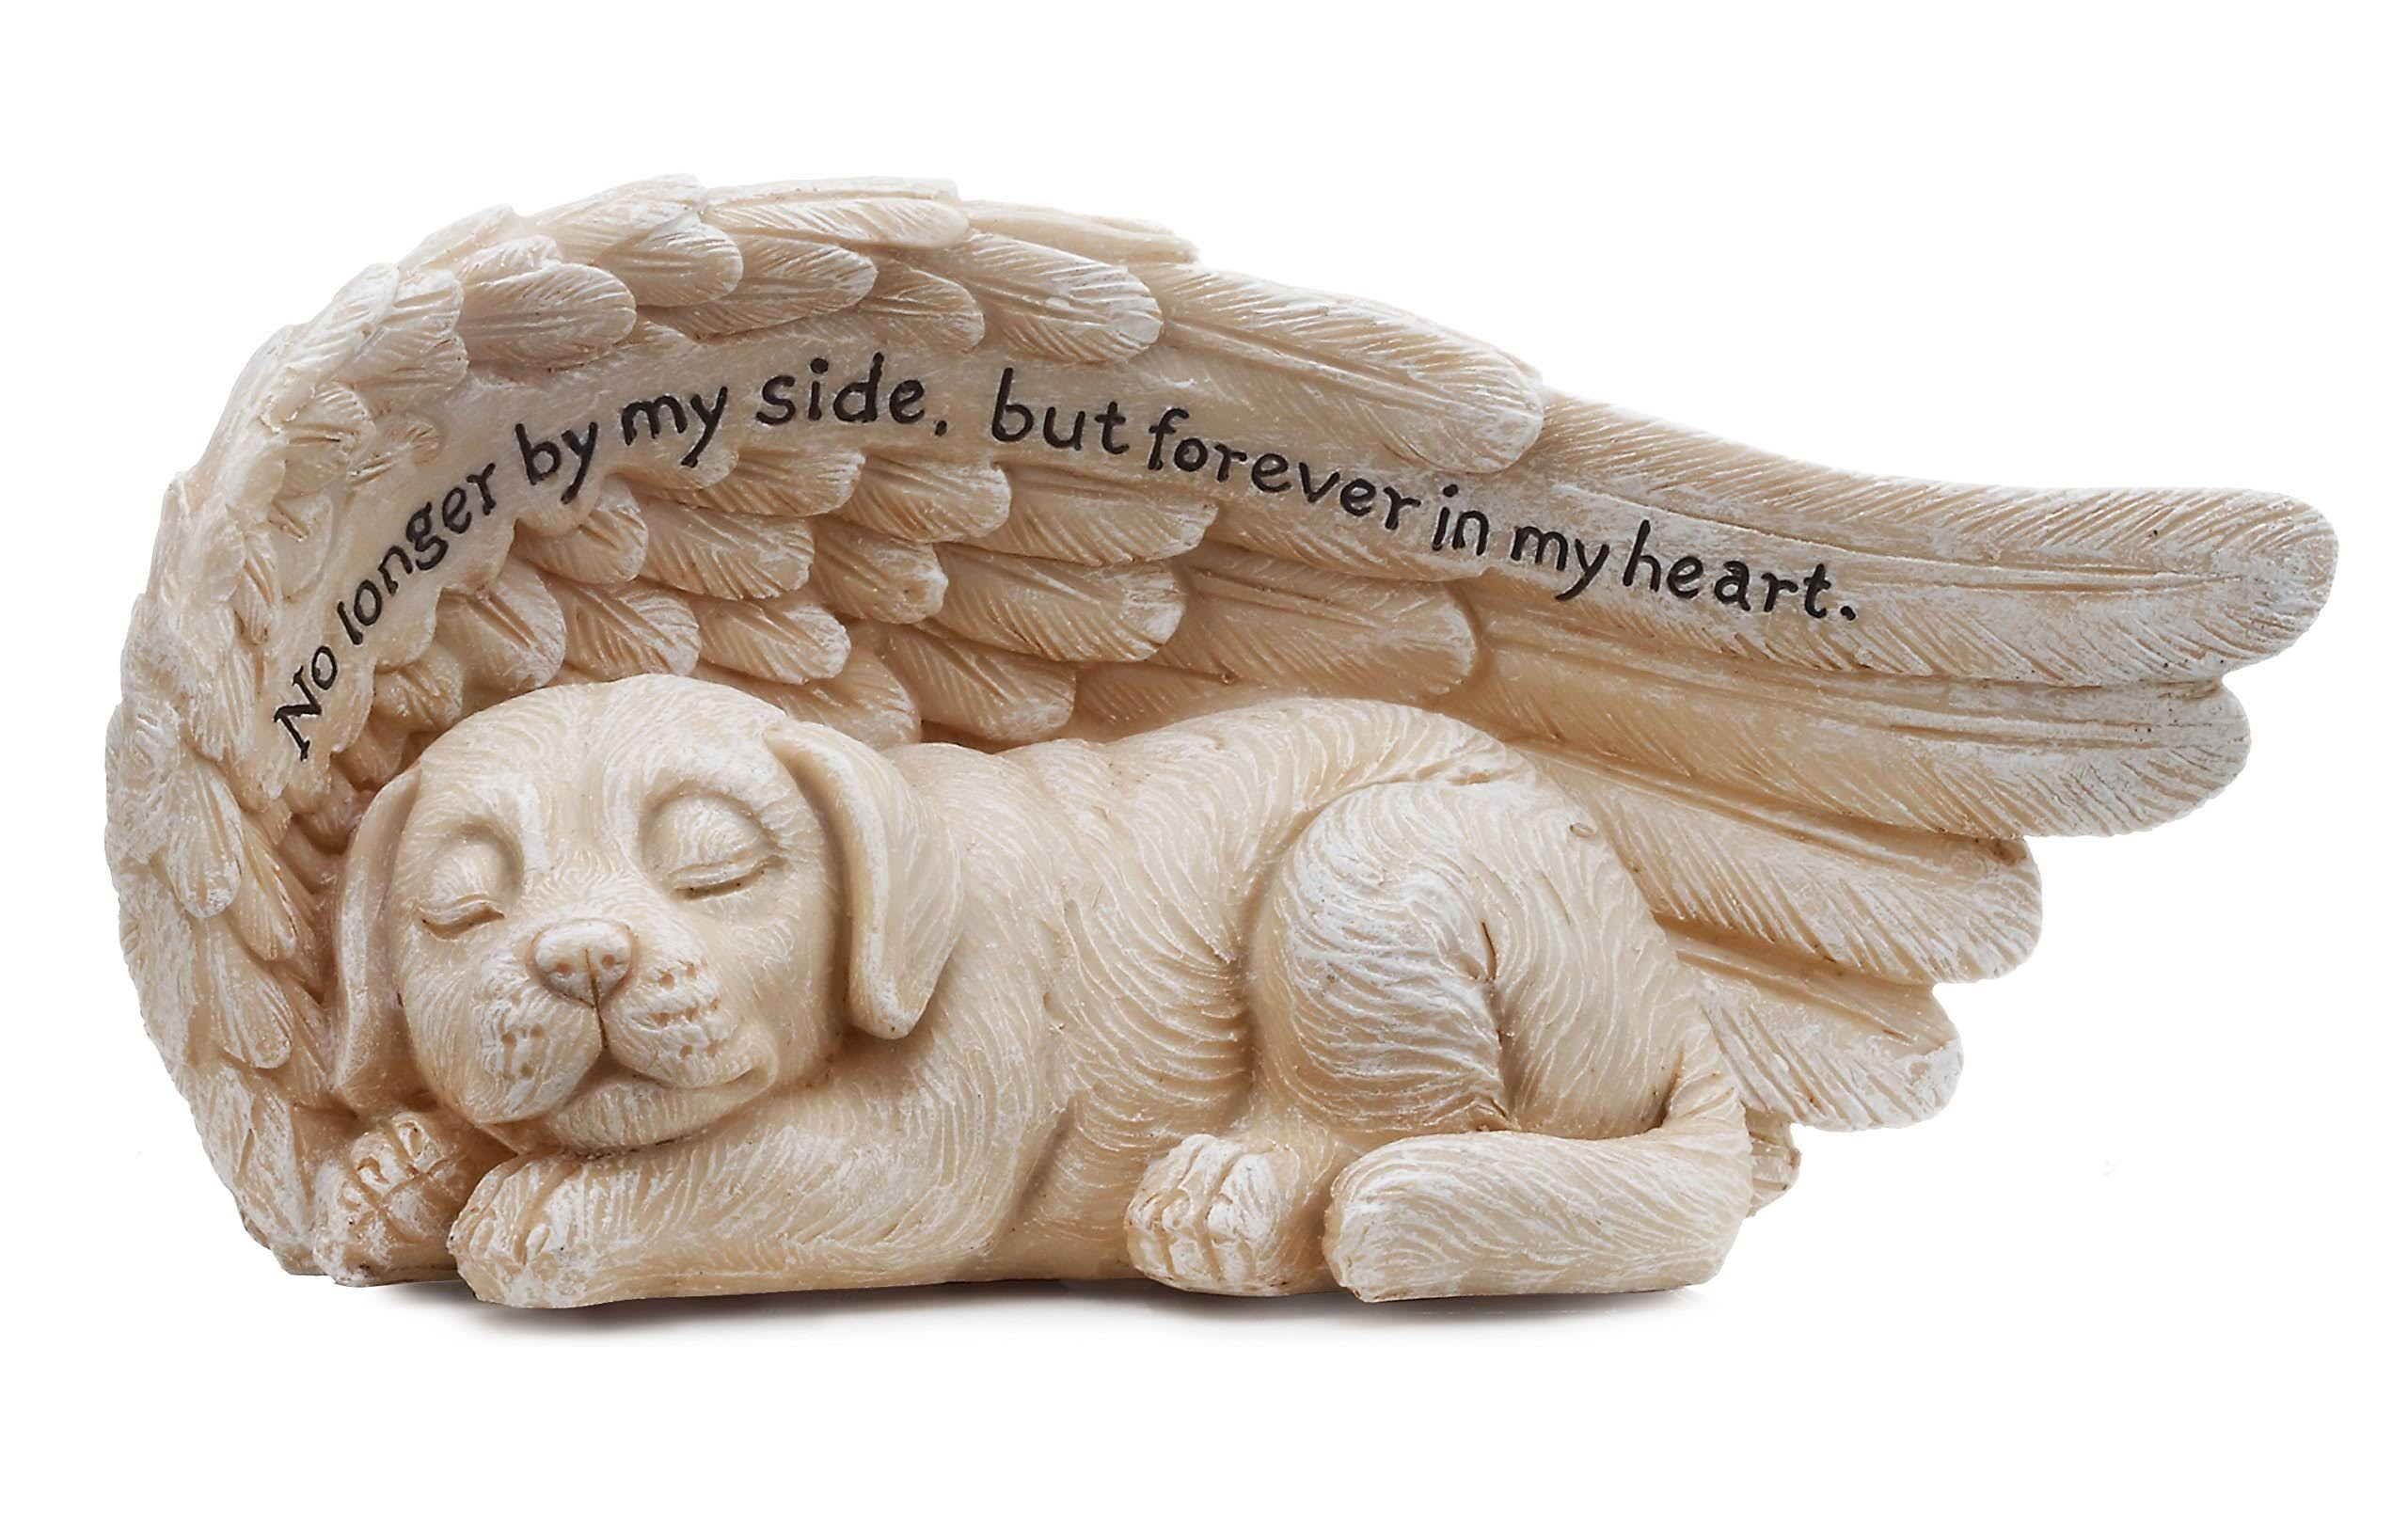 Napco 11146 Small Sleeping Dog in Angel's Wing Garden Statue with Inscription, 8